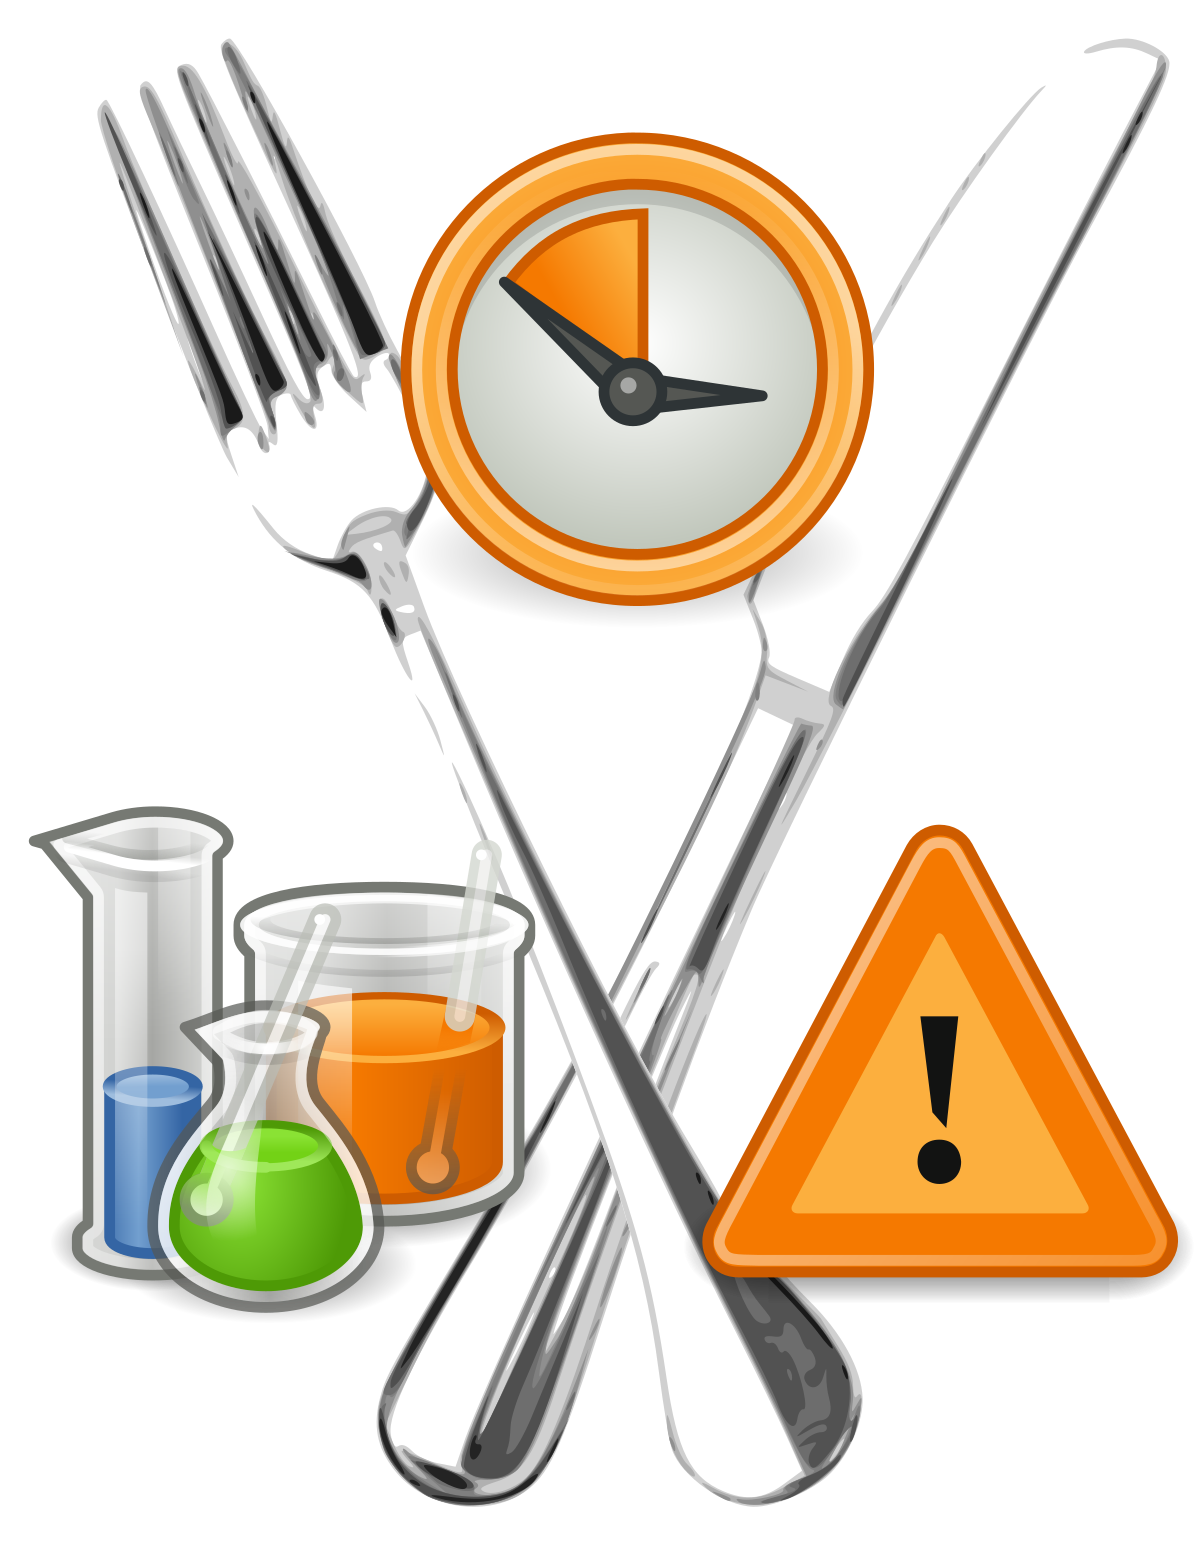 Contaminant wikipedia . Catering clipart home cooked food clip art free stock